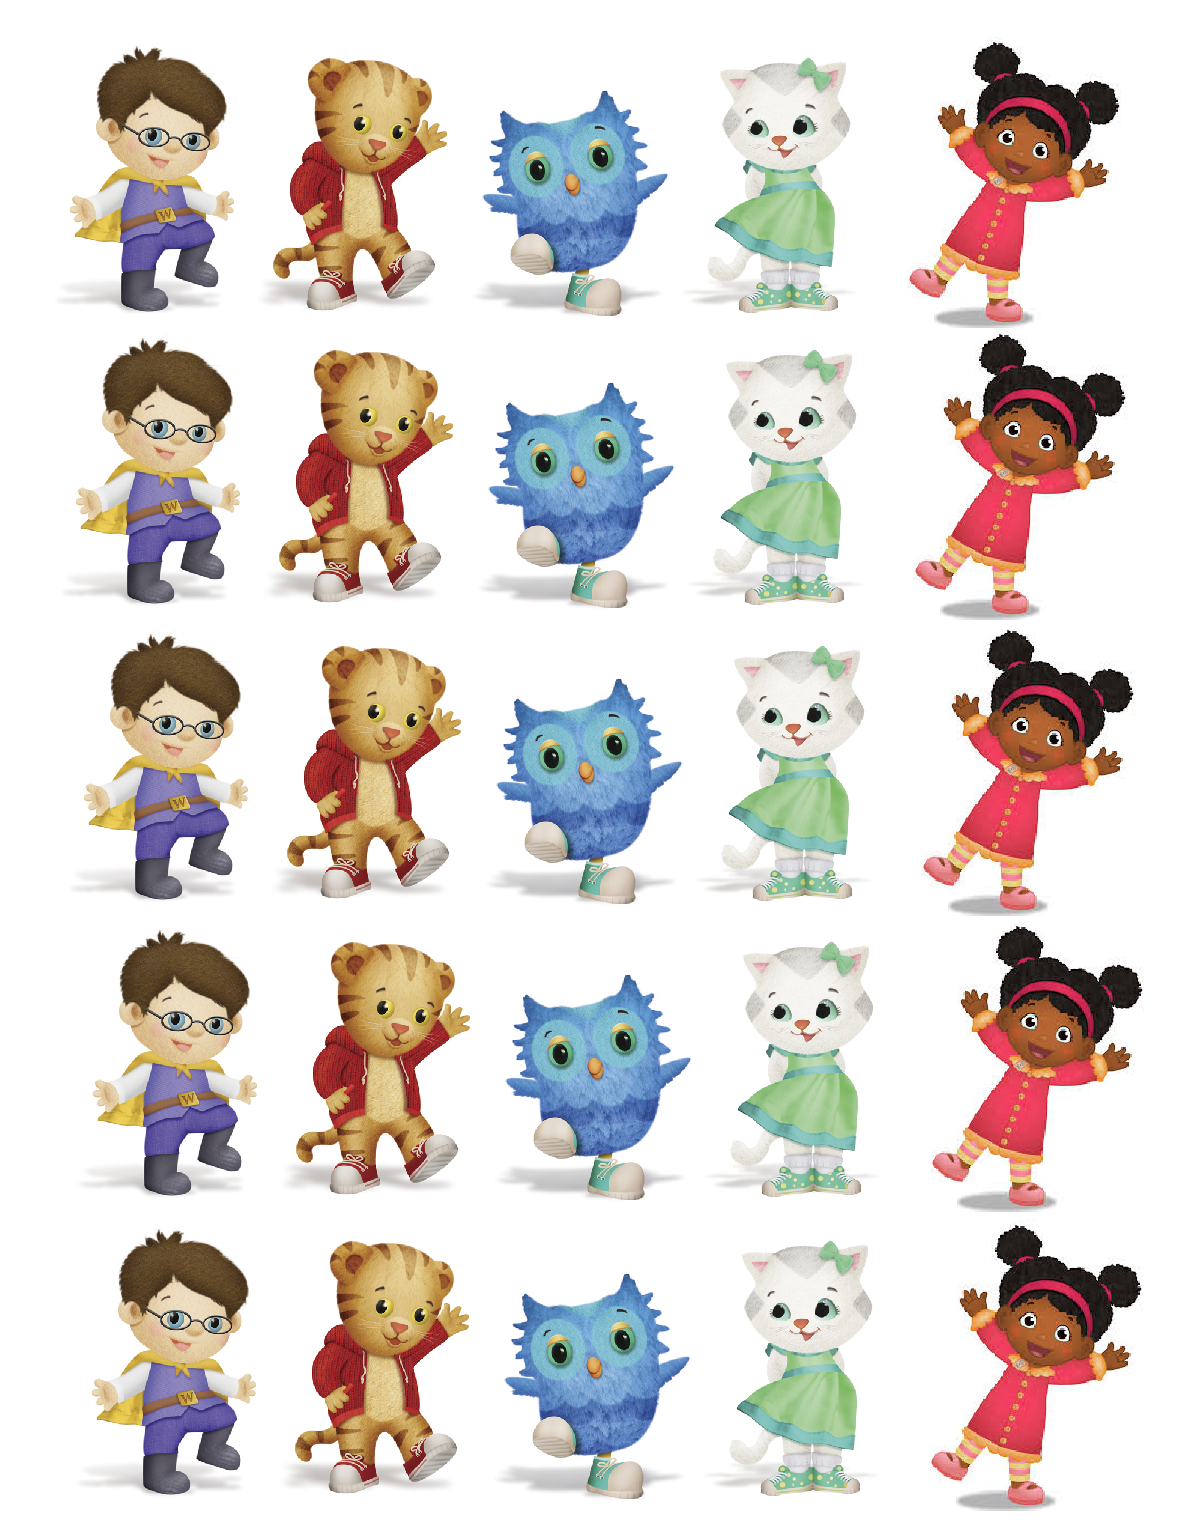 photo regarding Daniel Tiger Printable called Persona printables Daniel Tiger Printables inside of 2019